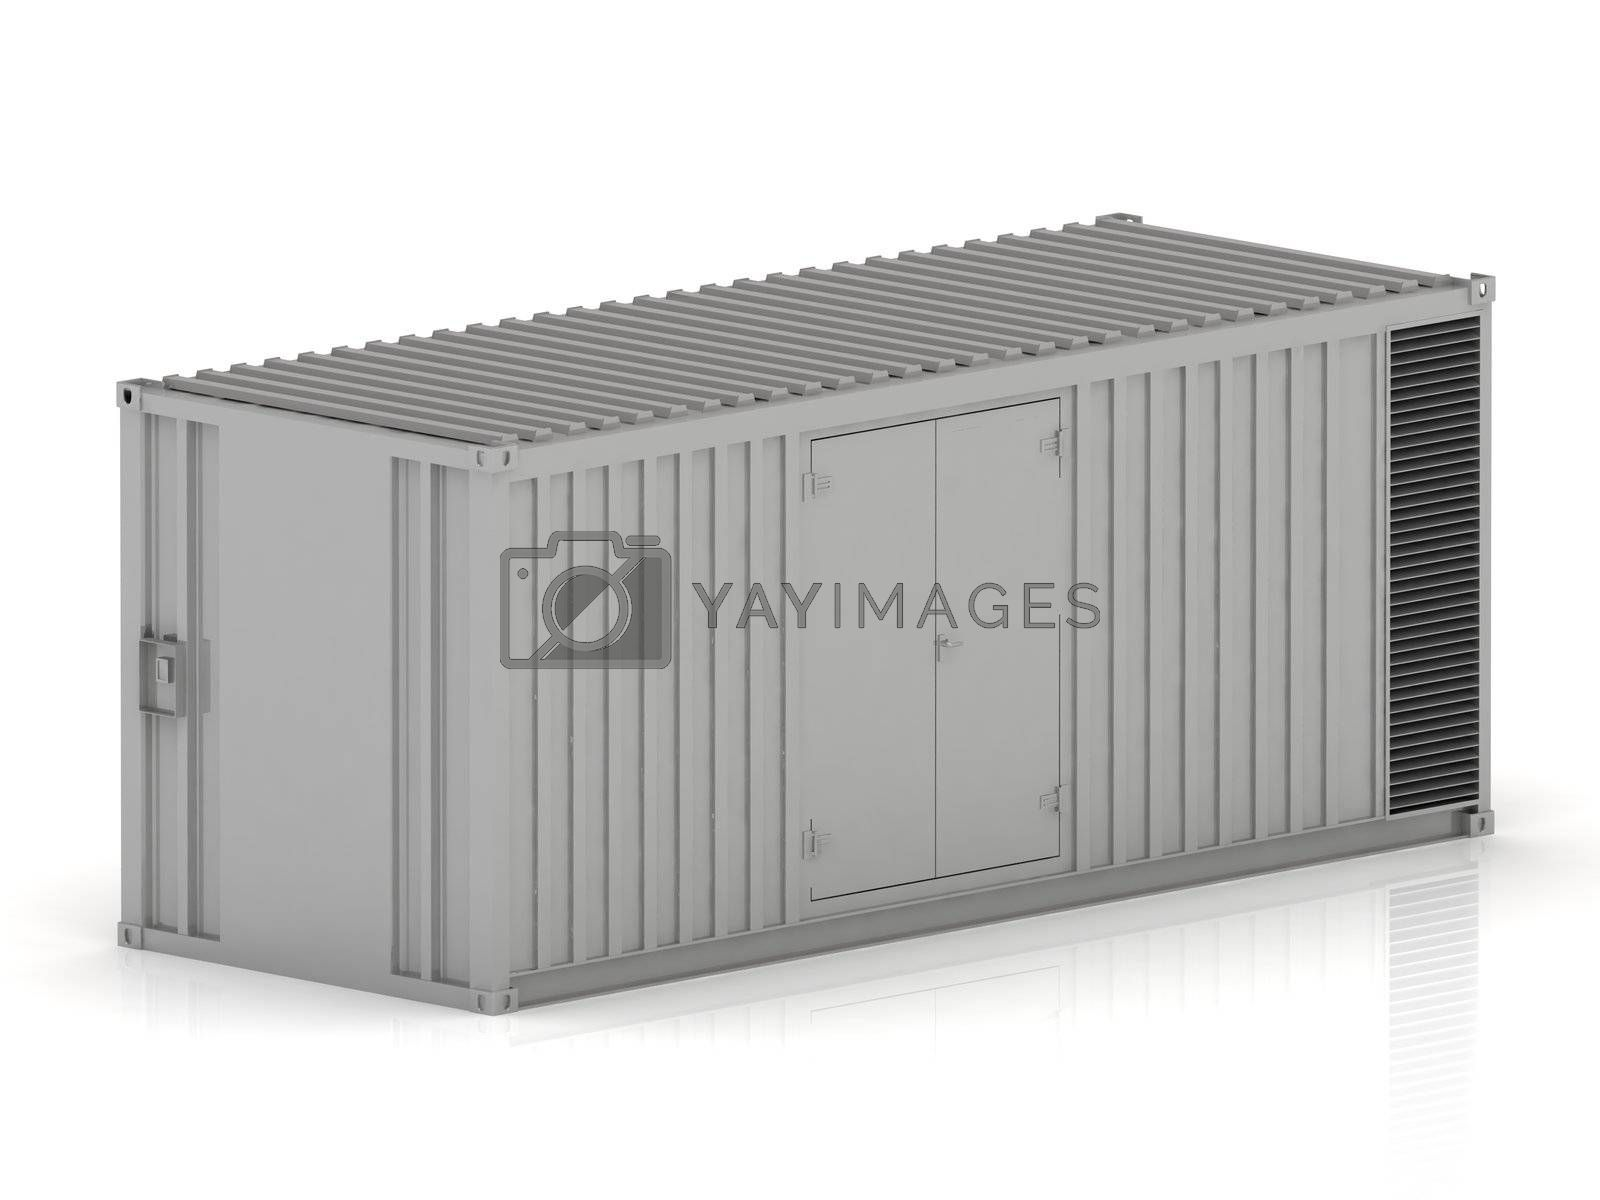 3D cargo container on a white background